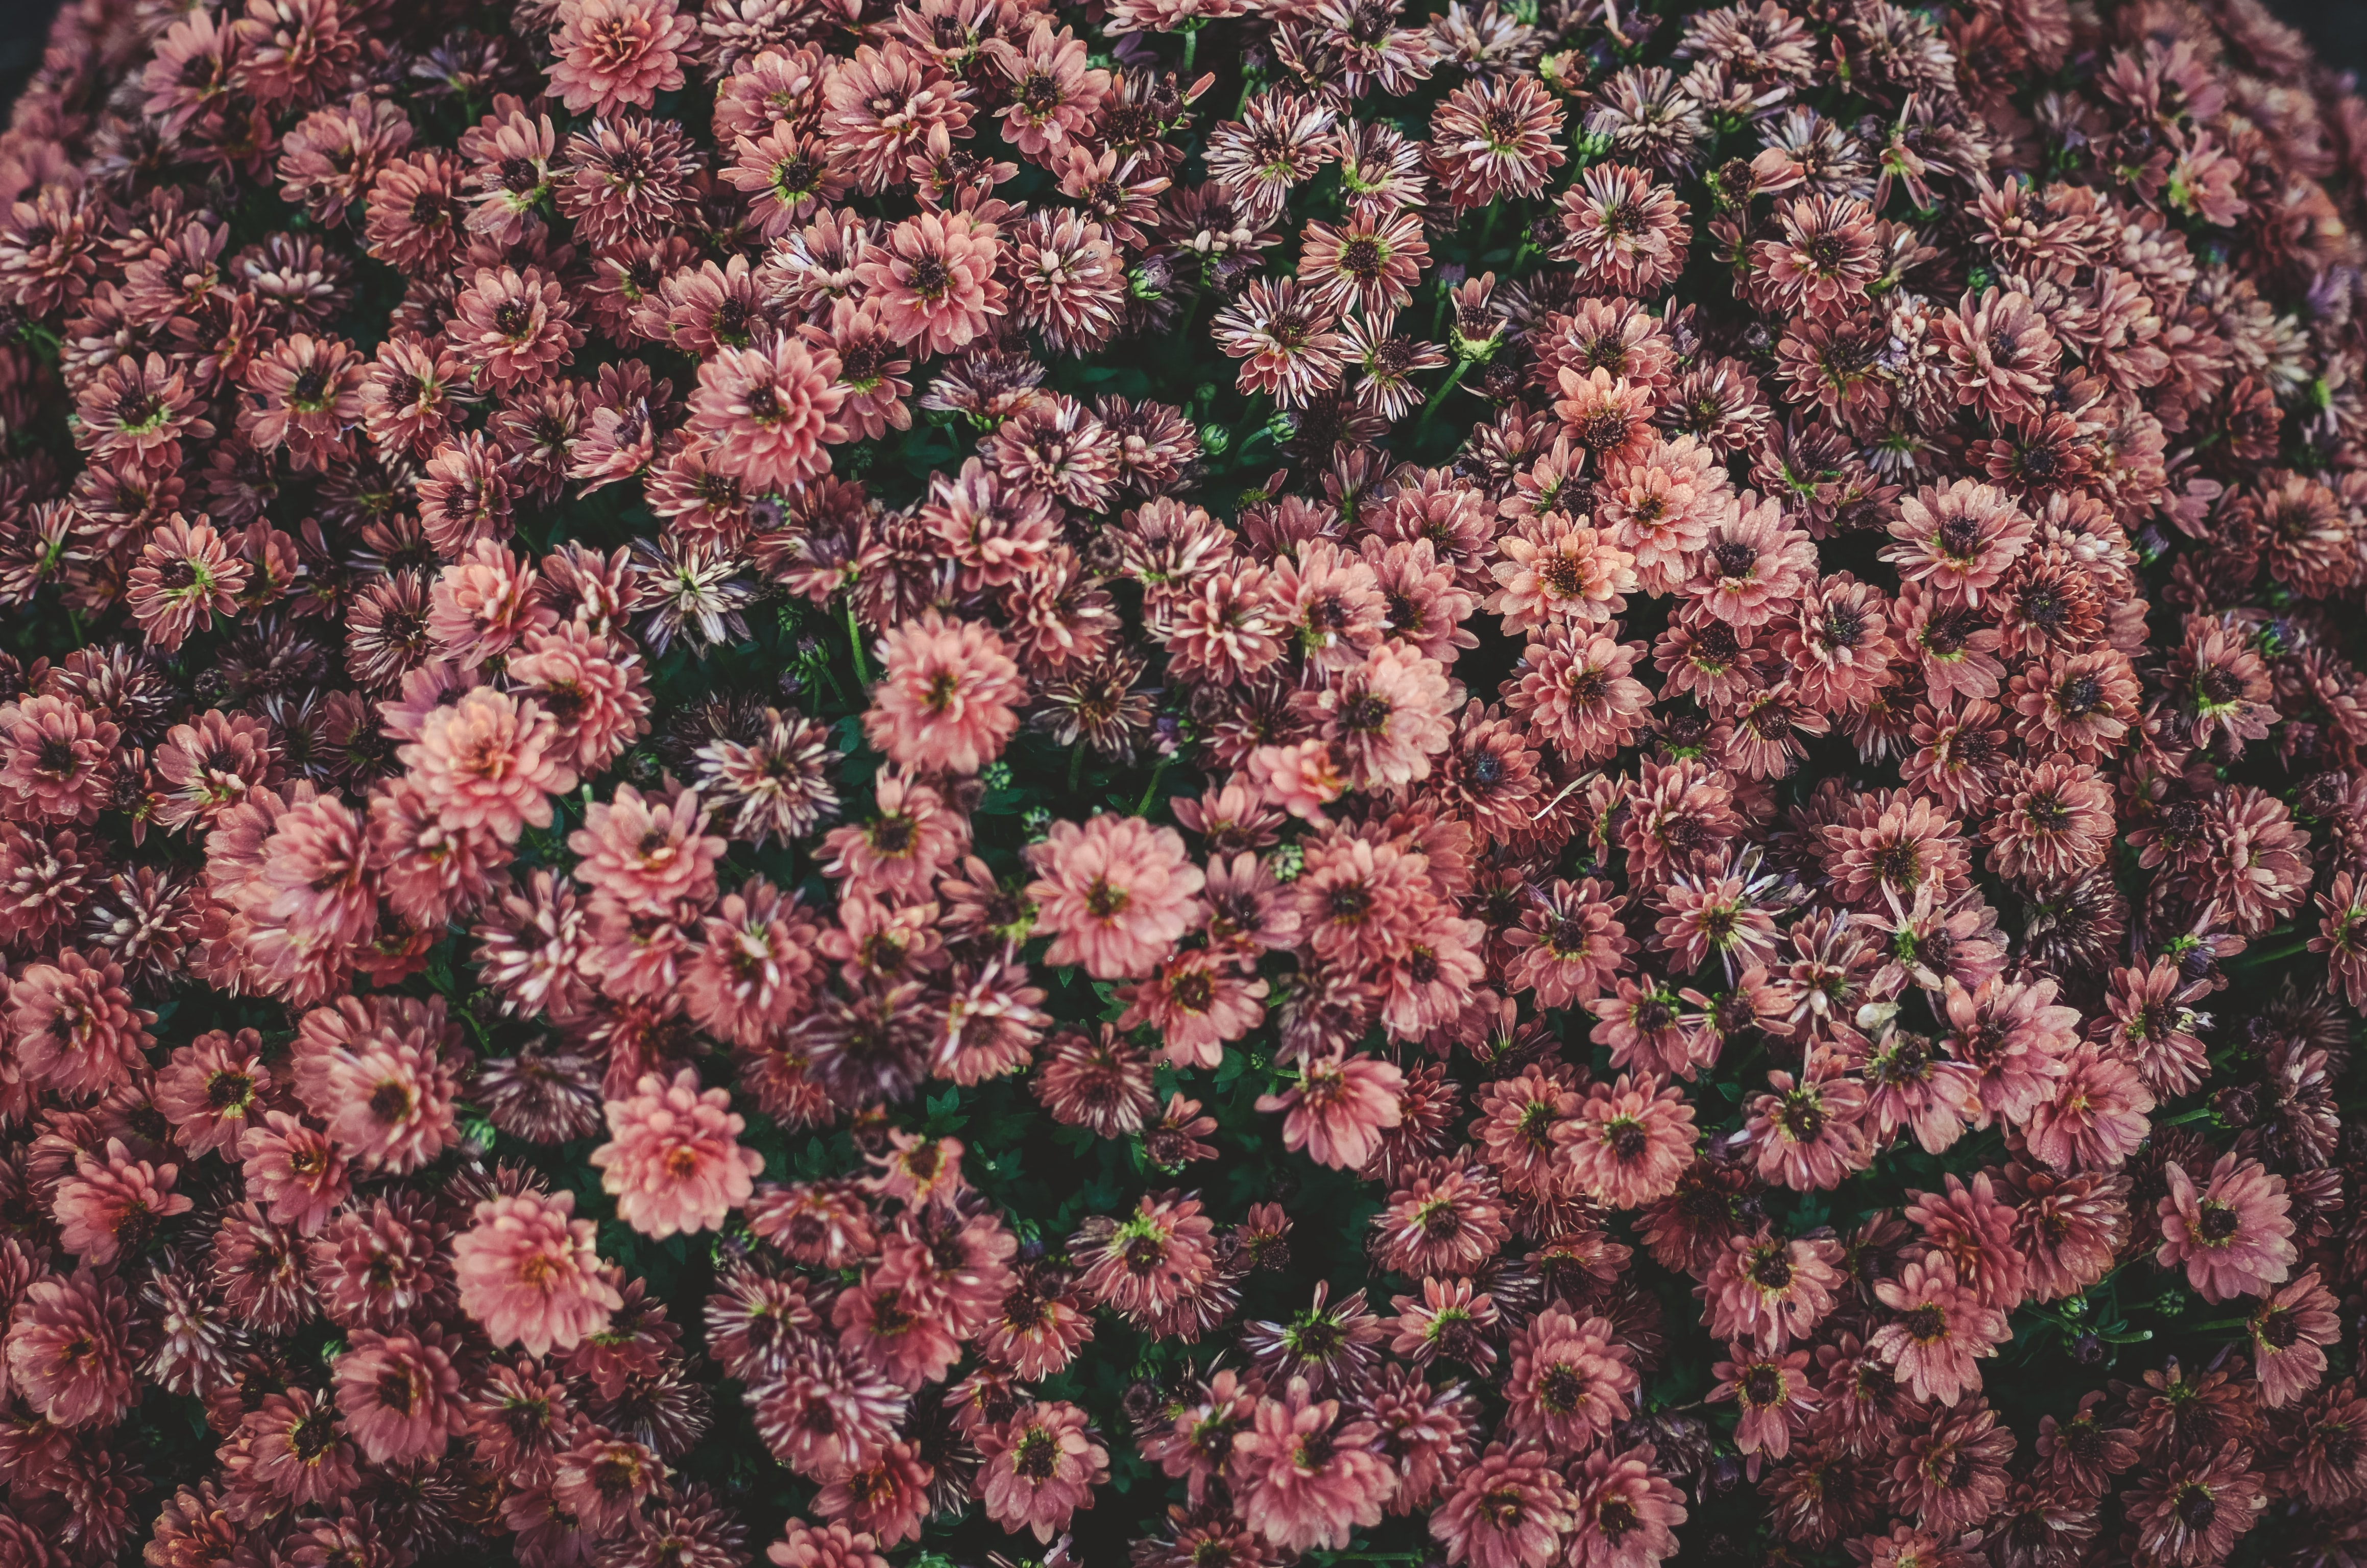 An overhead shot of a bed of dark pink flowers